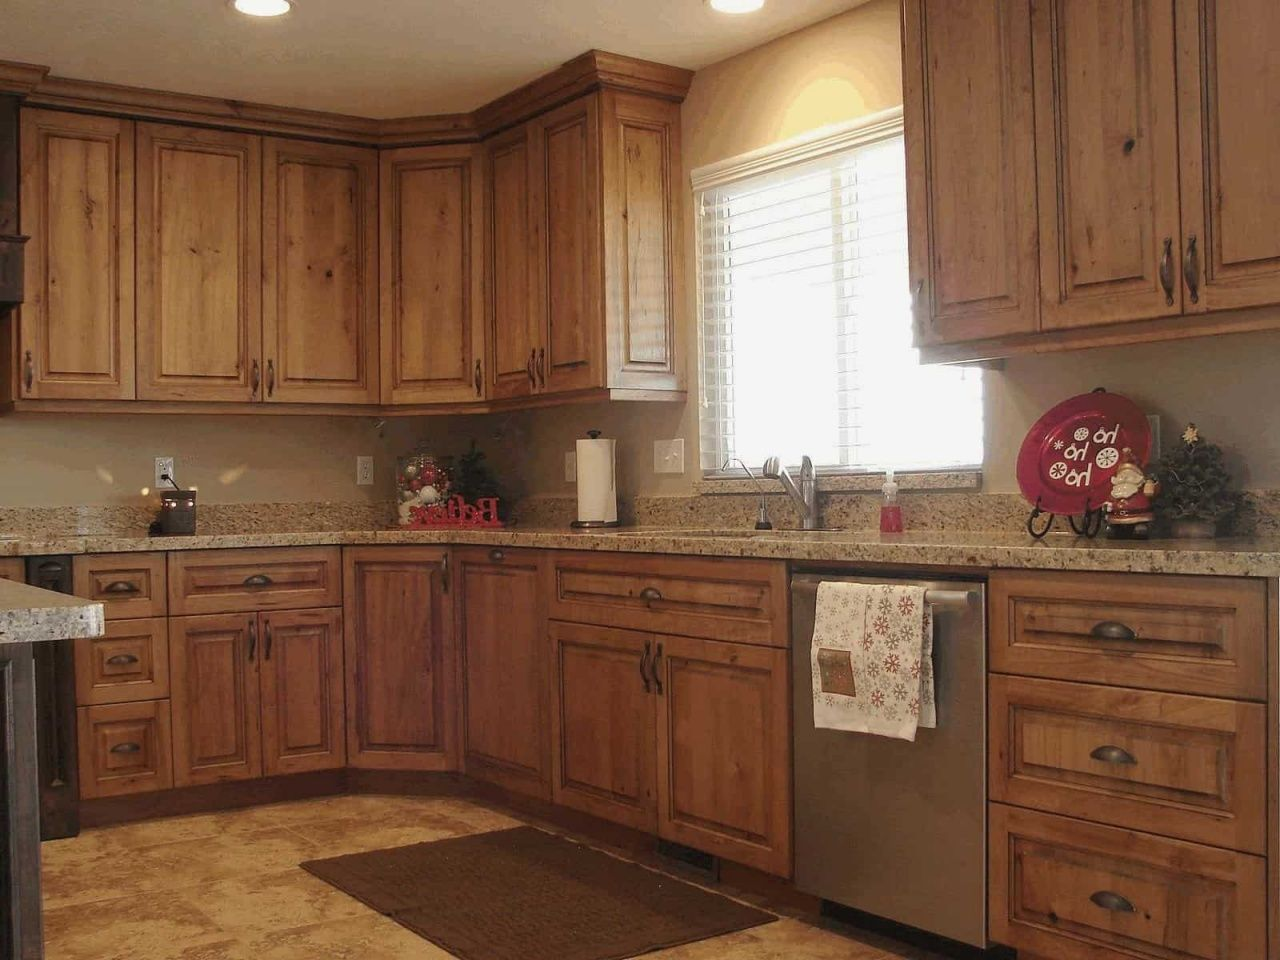 Best Way To Clean Wood Kitchen Cabinets In 2020 Cheap Kitchen Cabinets Knotty Pine Kitchen Kitchen Cabinets For Sale